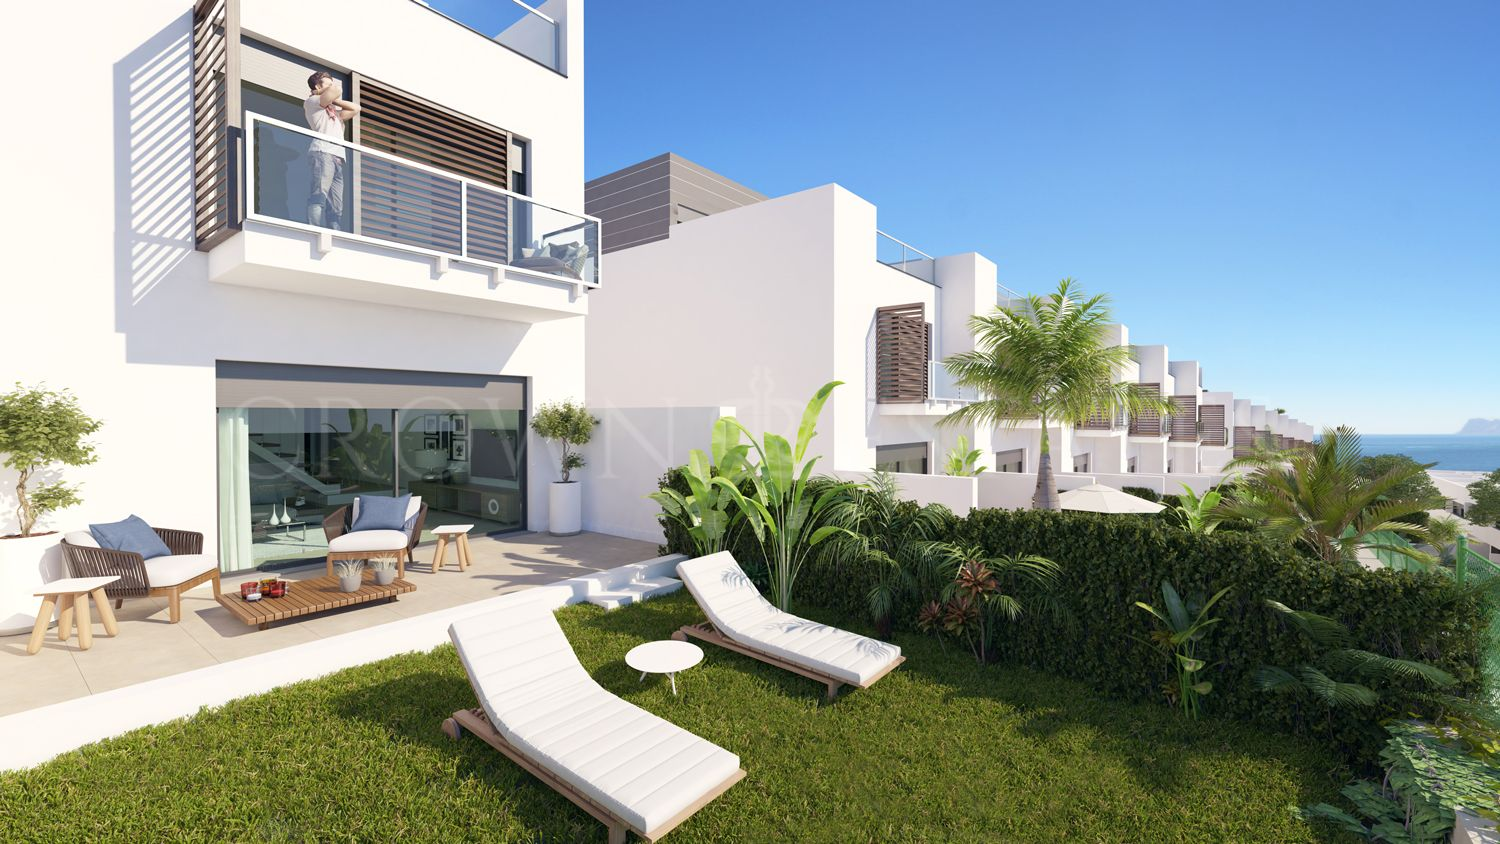 Majestic Heights, 47 contemporary town homes in Bahia de las Rocas, Manilva